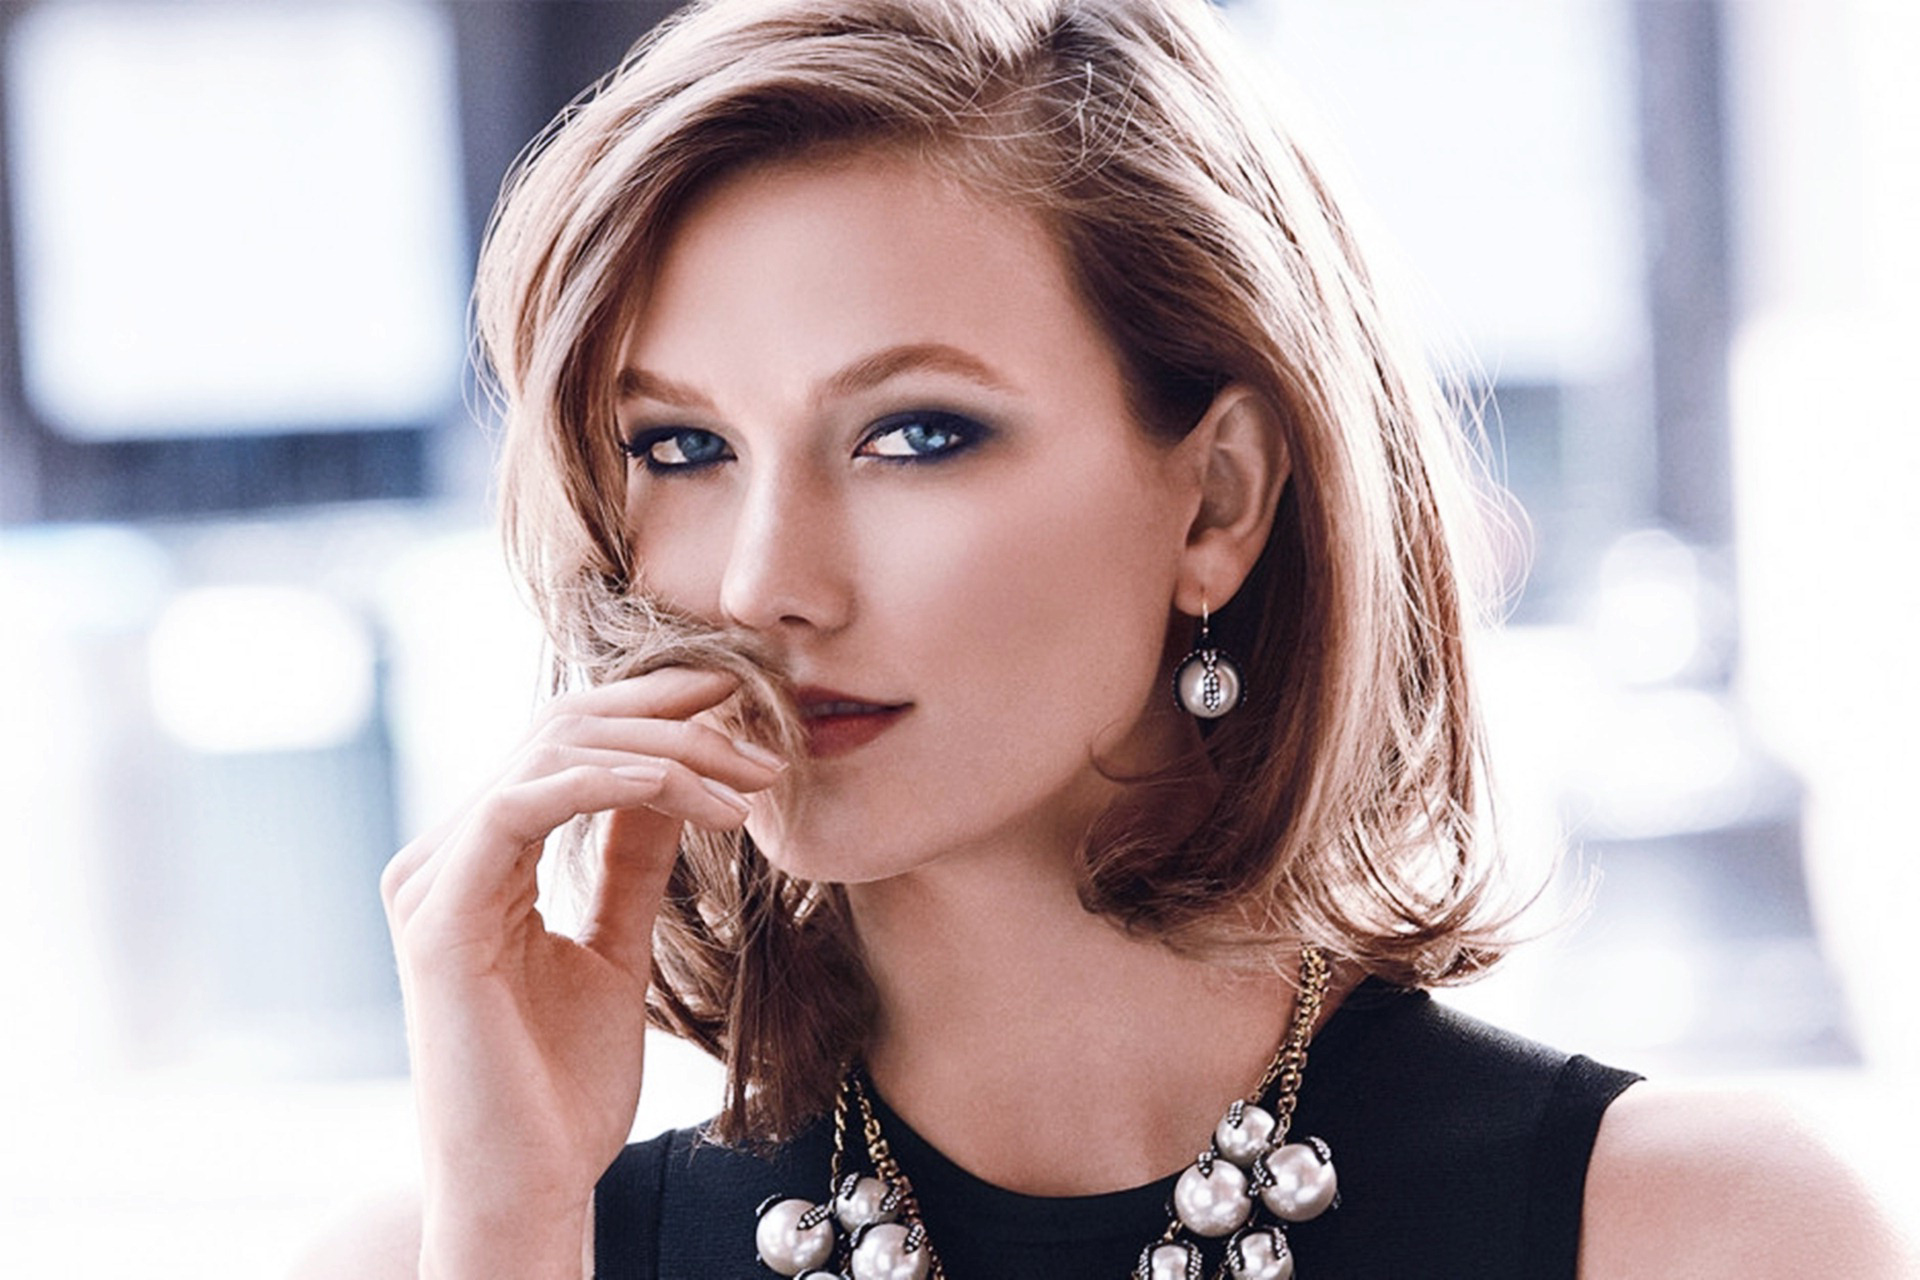 Karlie kloss hd wallpapers - High resolution wallpaper celebrity ...